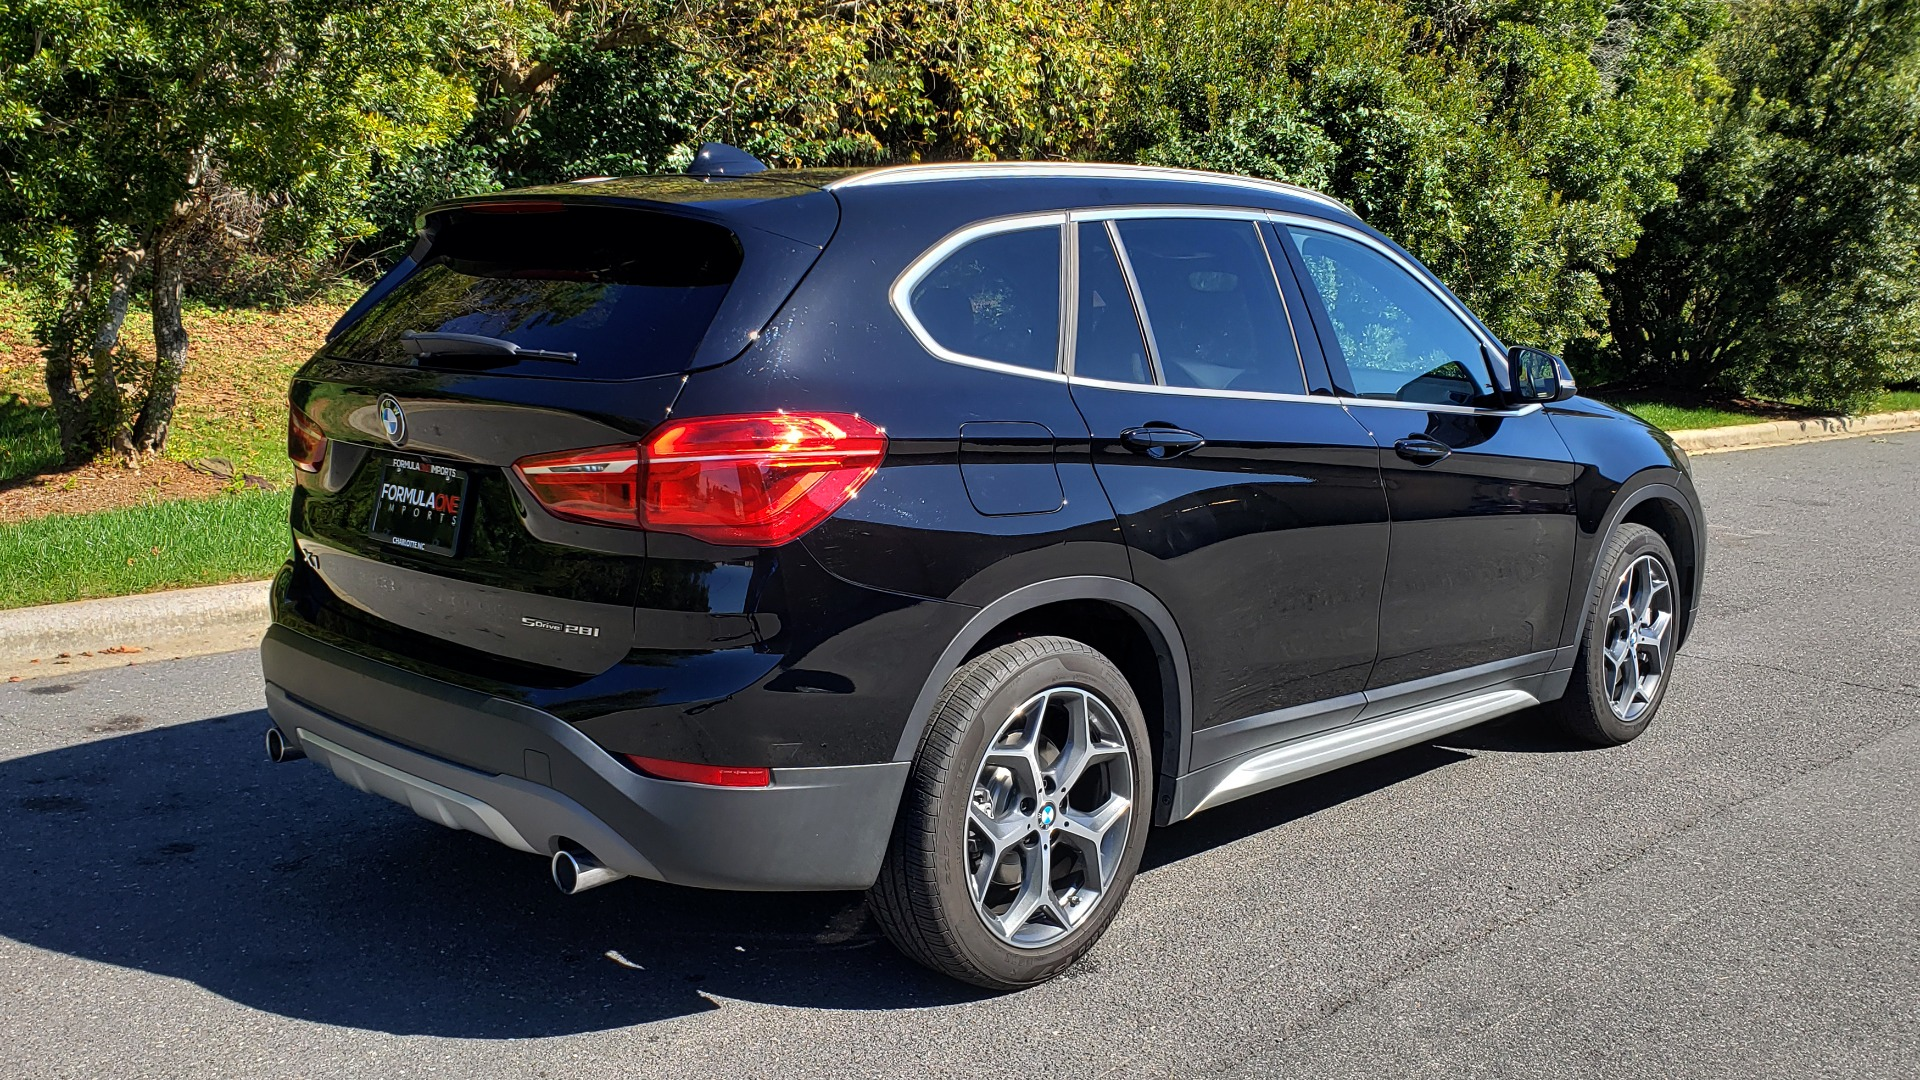 Used 2018 BMW X1 SDRIVE28I / HEATED SEATS / 4-CYL / 8-SPD AUTO / REARVIEW for sale Sold at Formula Imports in Charlotte NC 28227 2